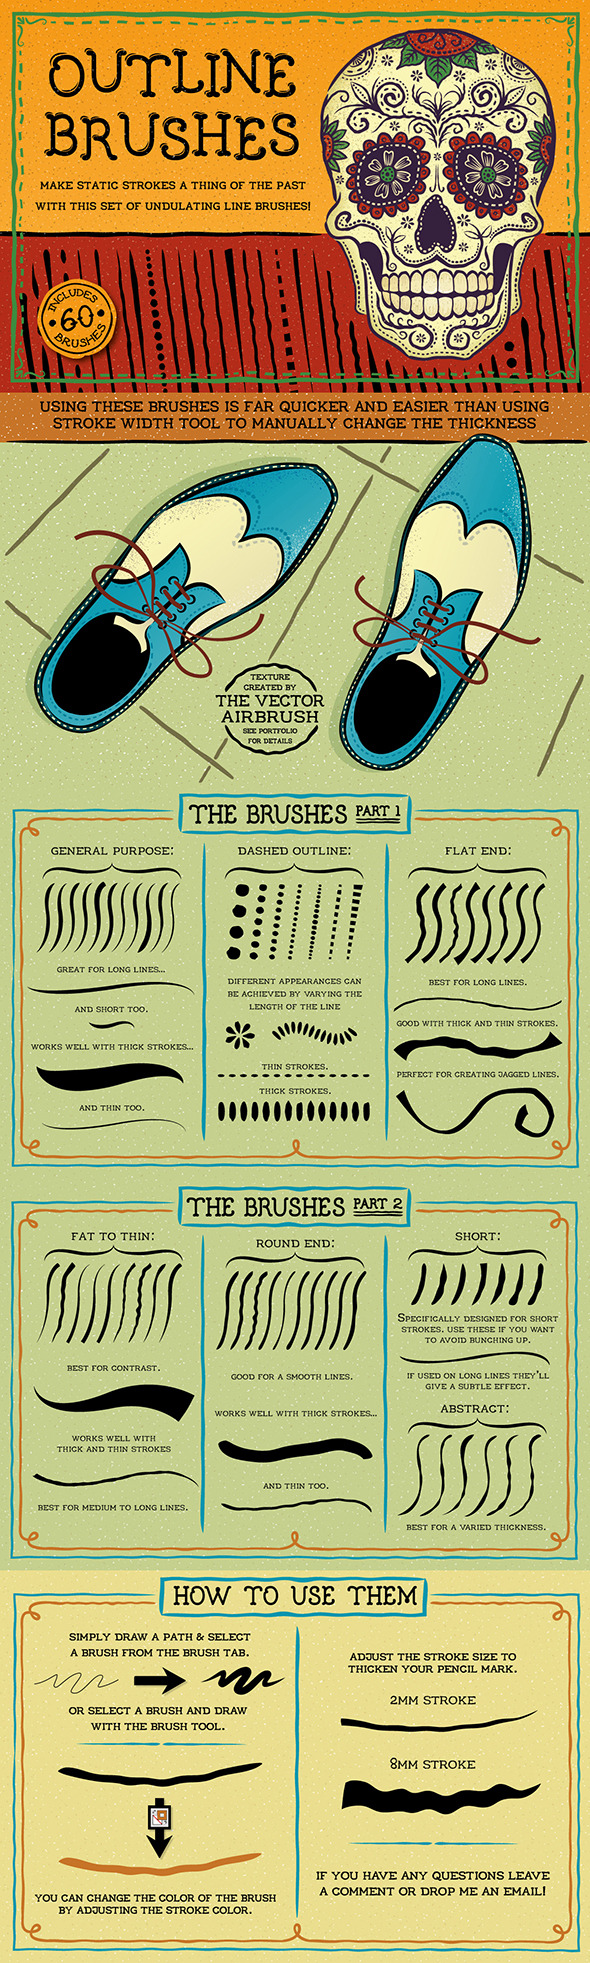 Outline Brushes - Brushes Illustrator